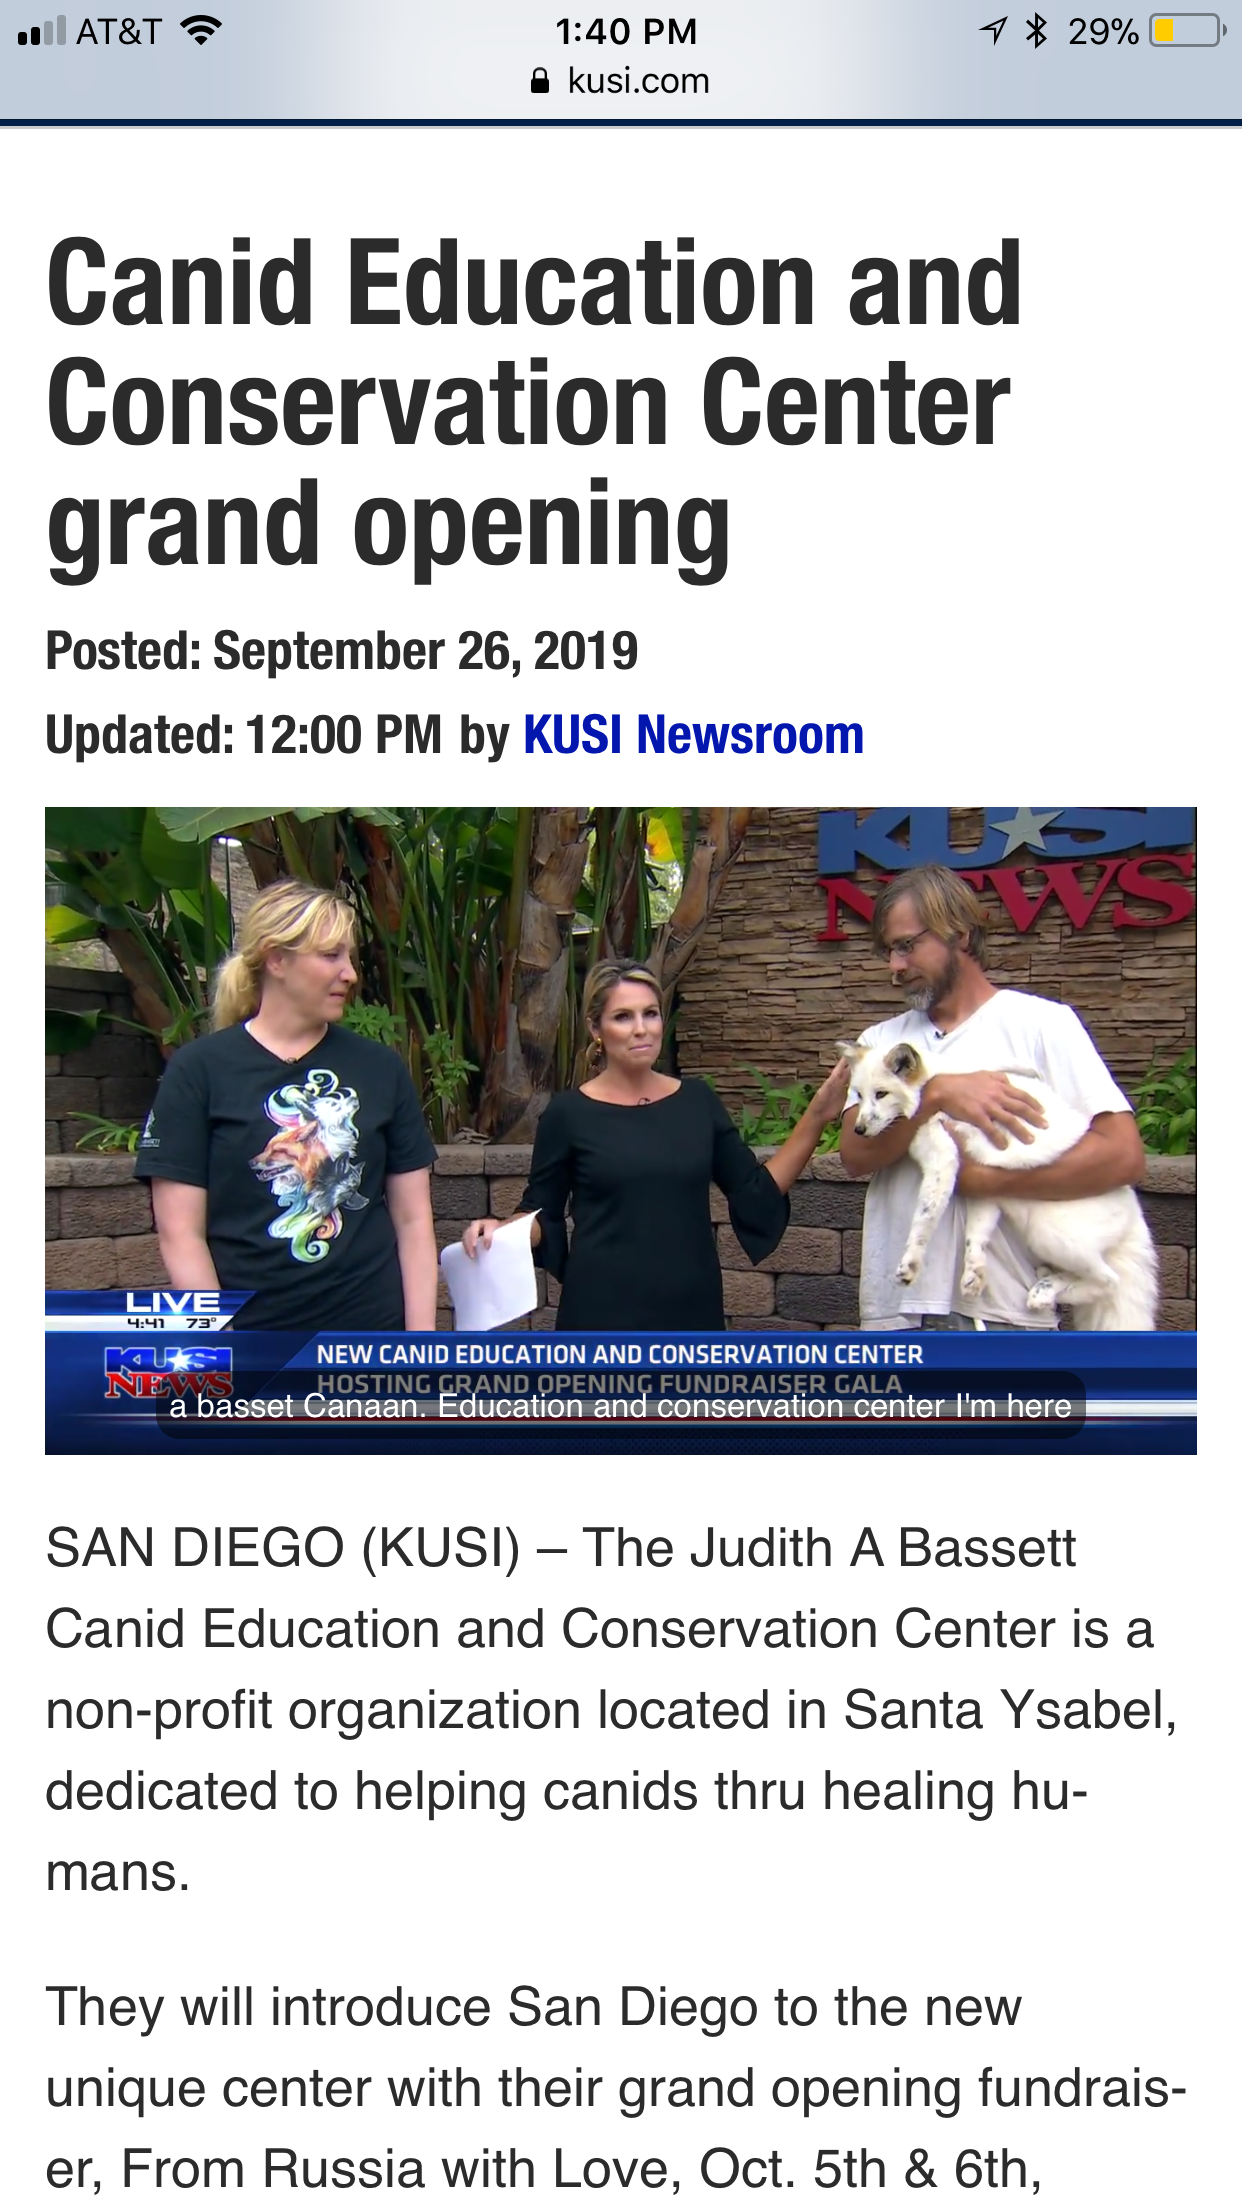 JABCECC Founders at KUSI - https://www.kusi.com/canid-education-and-conservation-center-grand-opening/